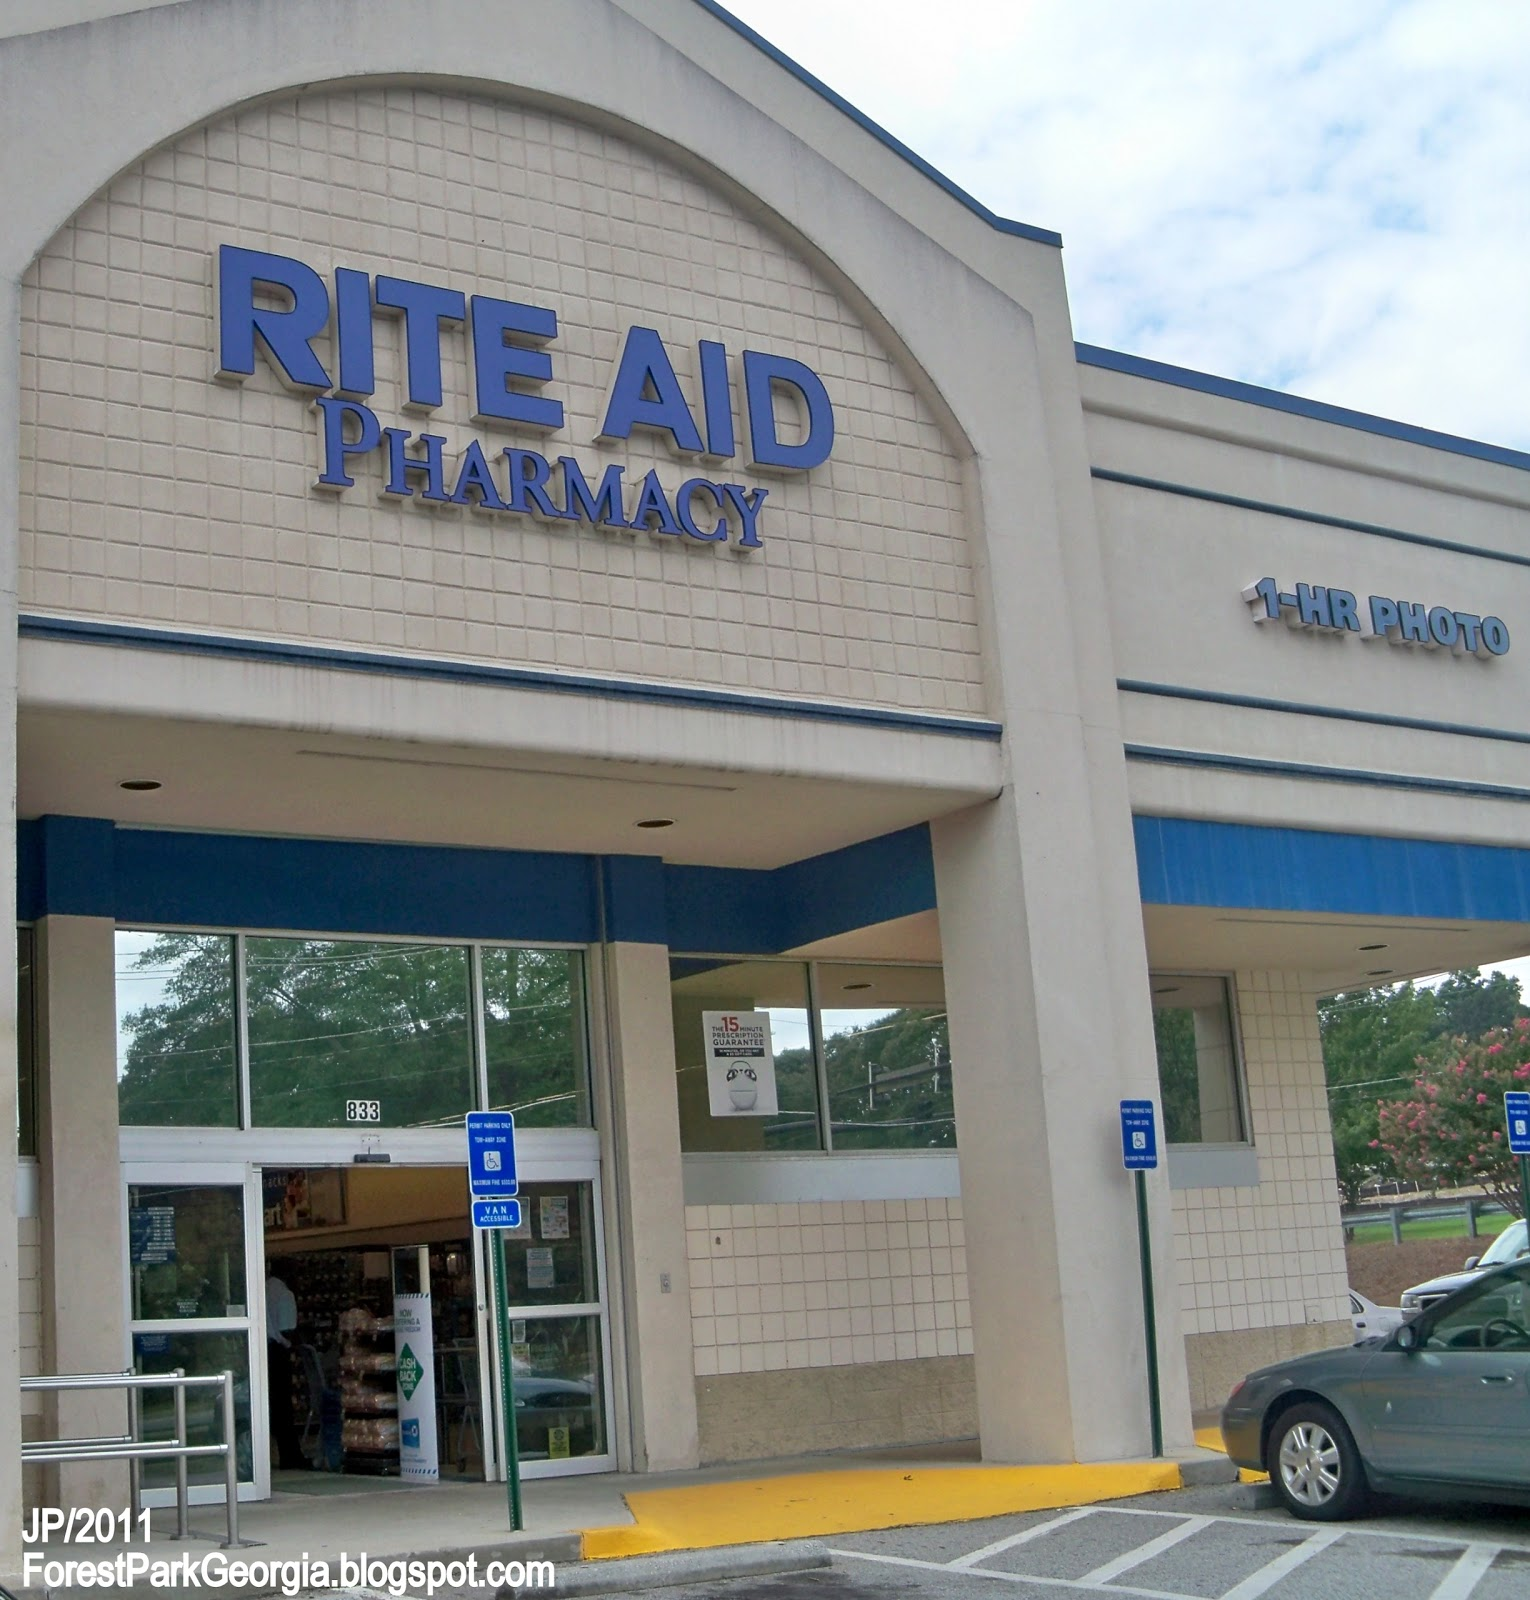 RITE AID PHARMACY FOREST PARK GEORGIA Rite Aid Drug Store Pharmacy Forest Park Clayton County GA